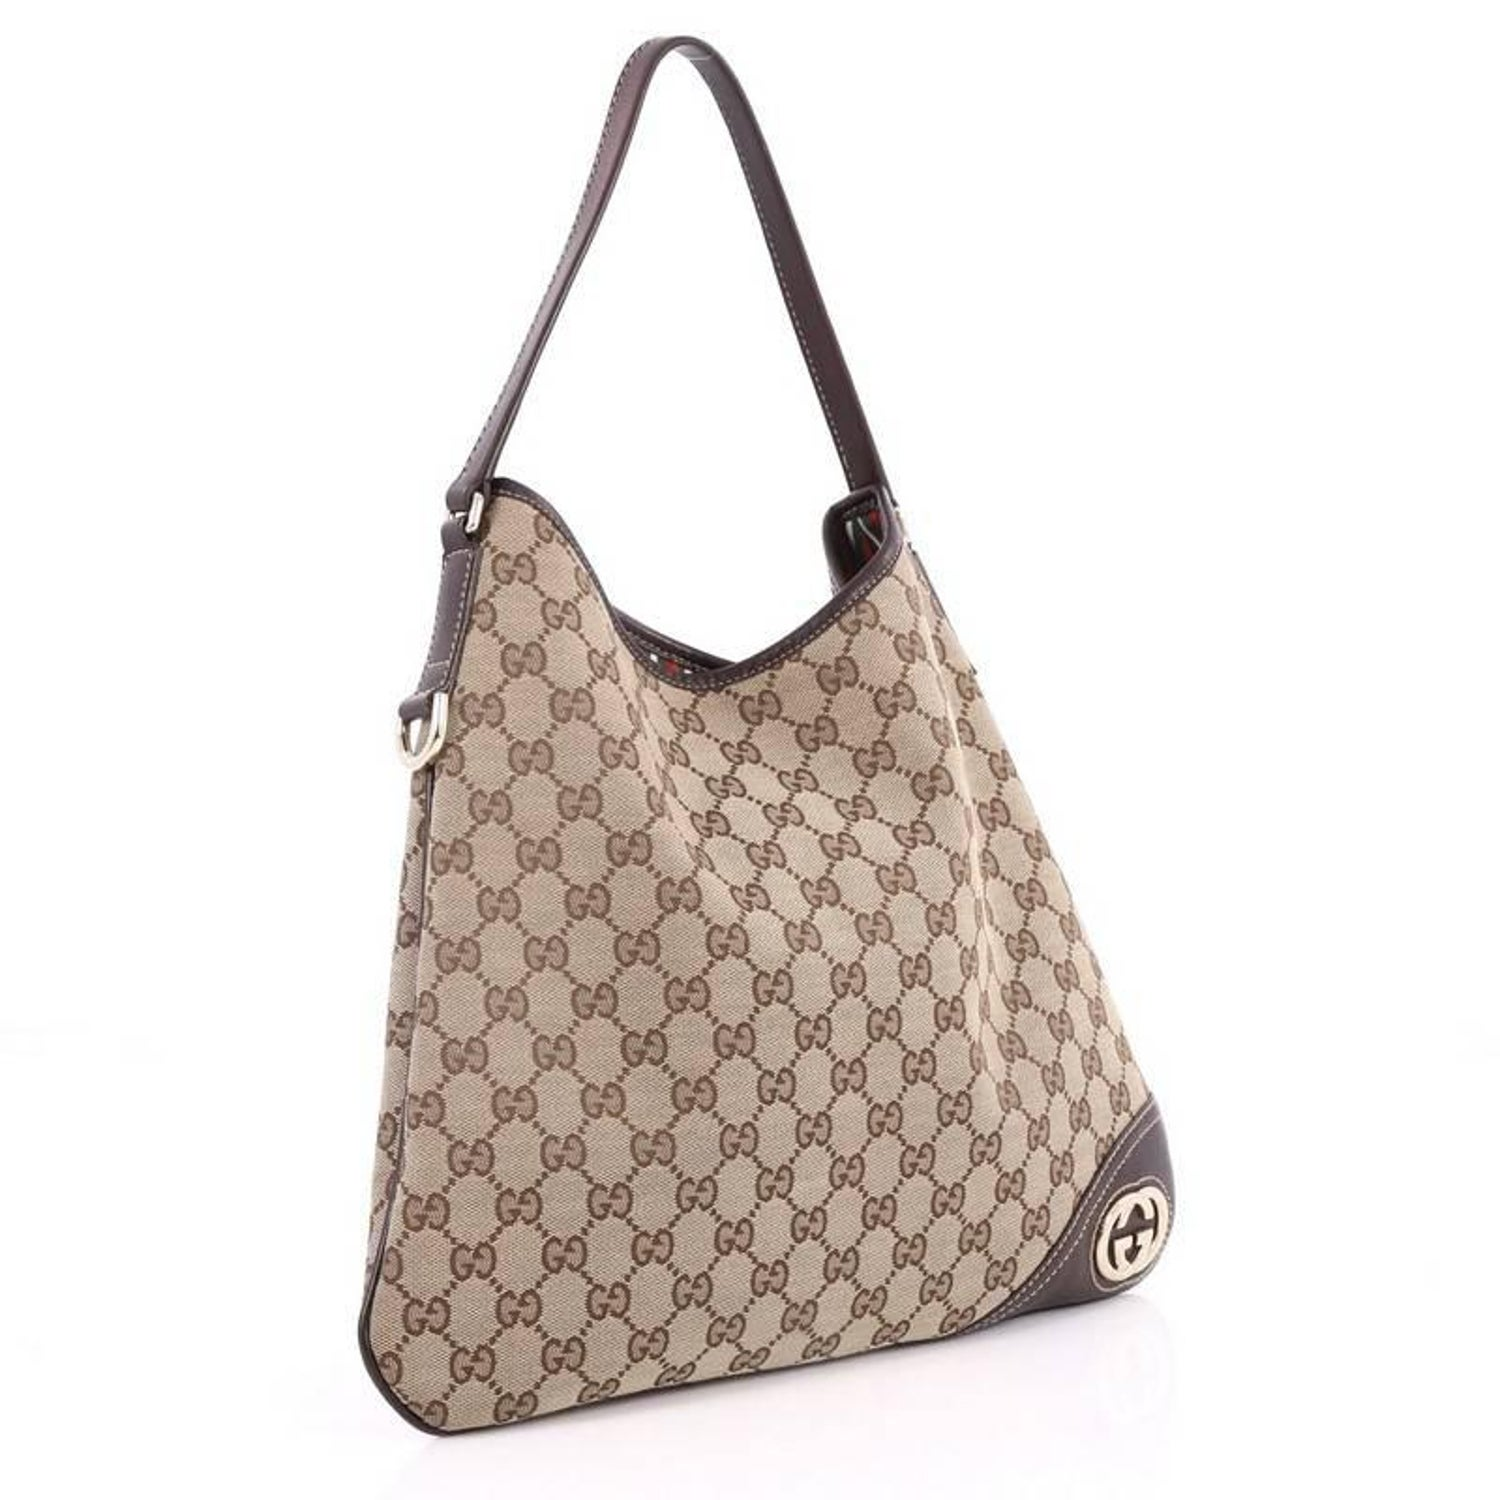 020c4367faae Gucci New Britt Hobo GG Canvas Medium at 1stdibs